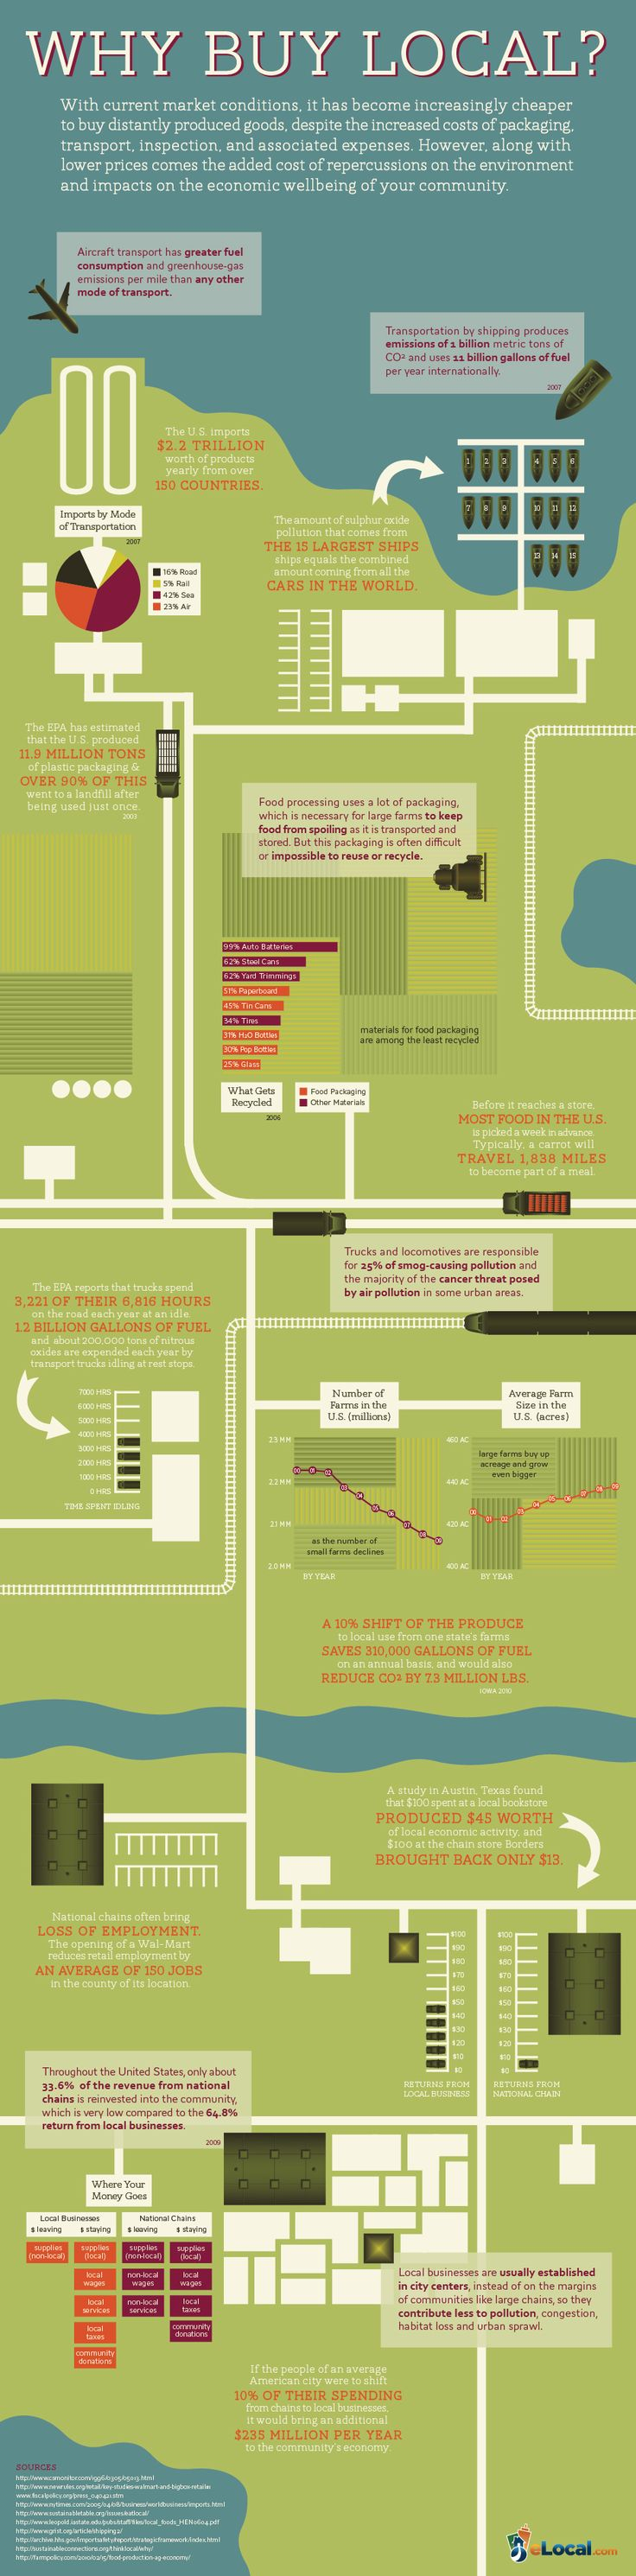 why buy local infographic [ 736 x 2981 Pixel ]